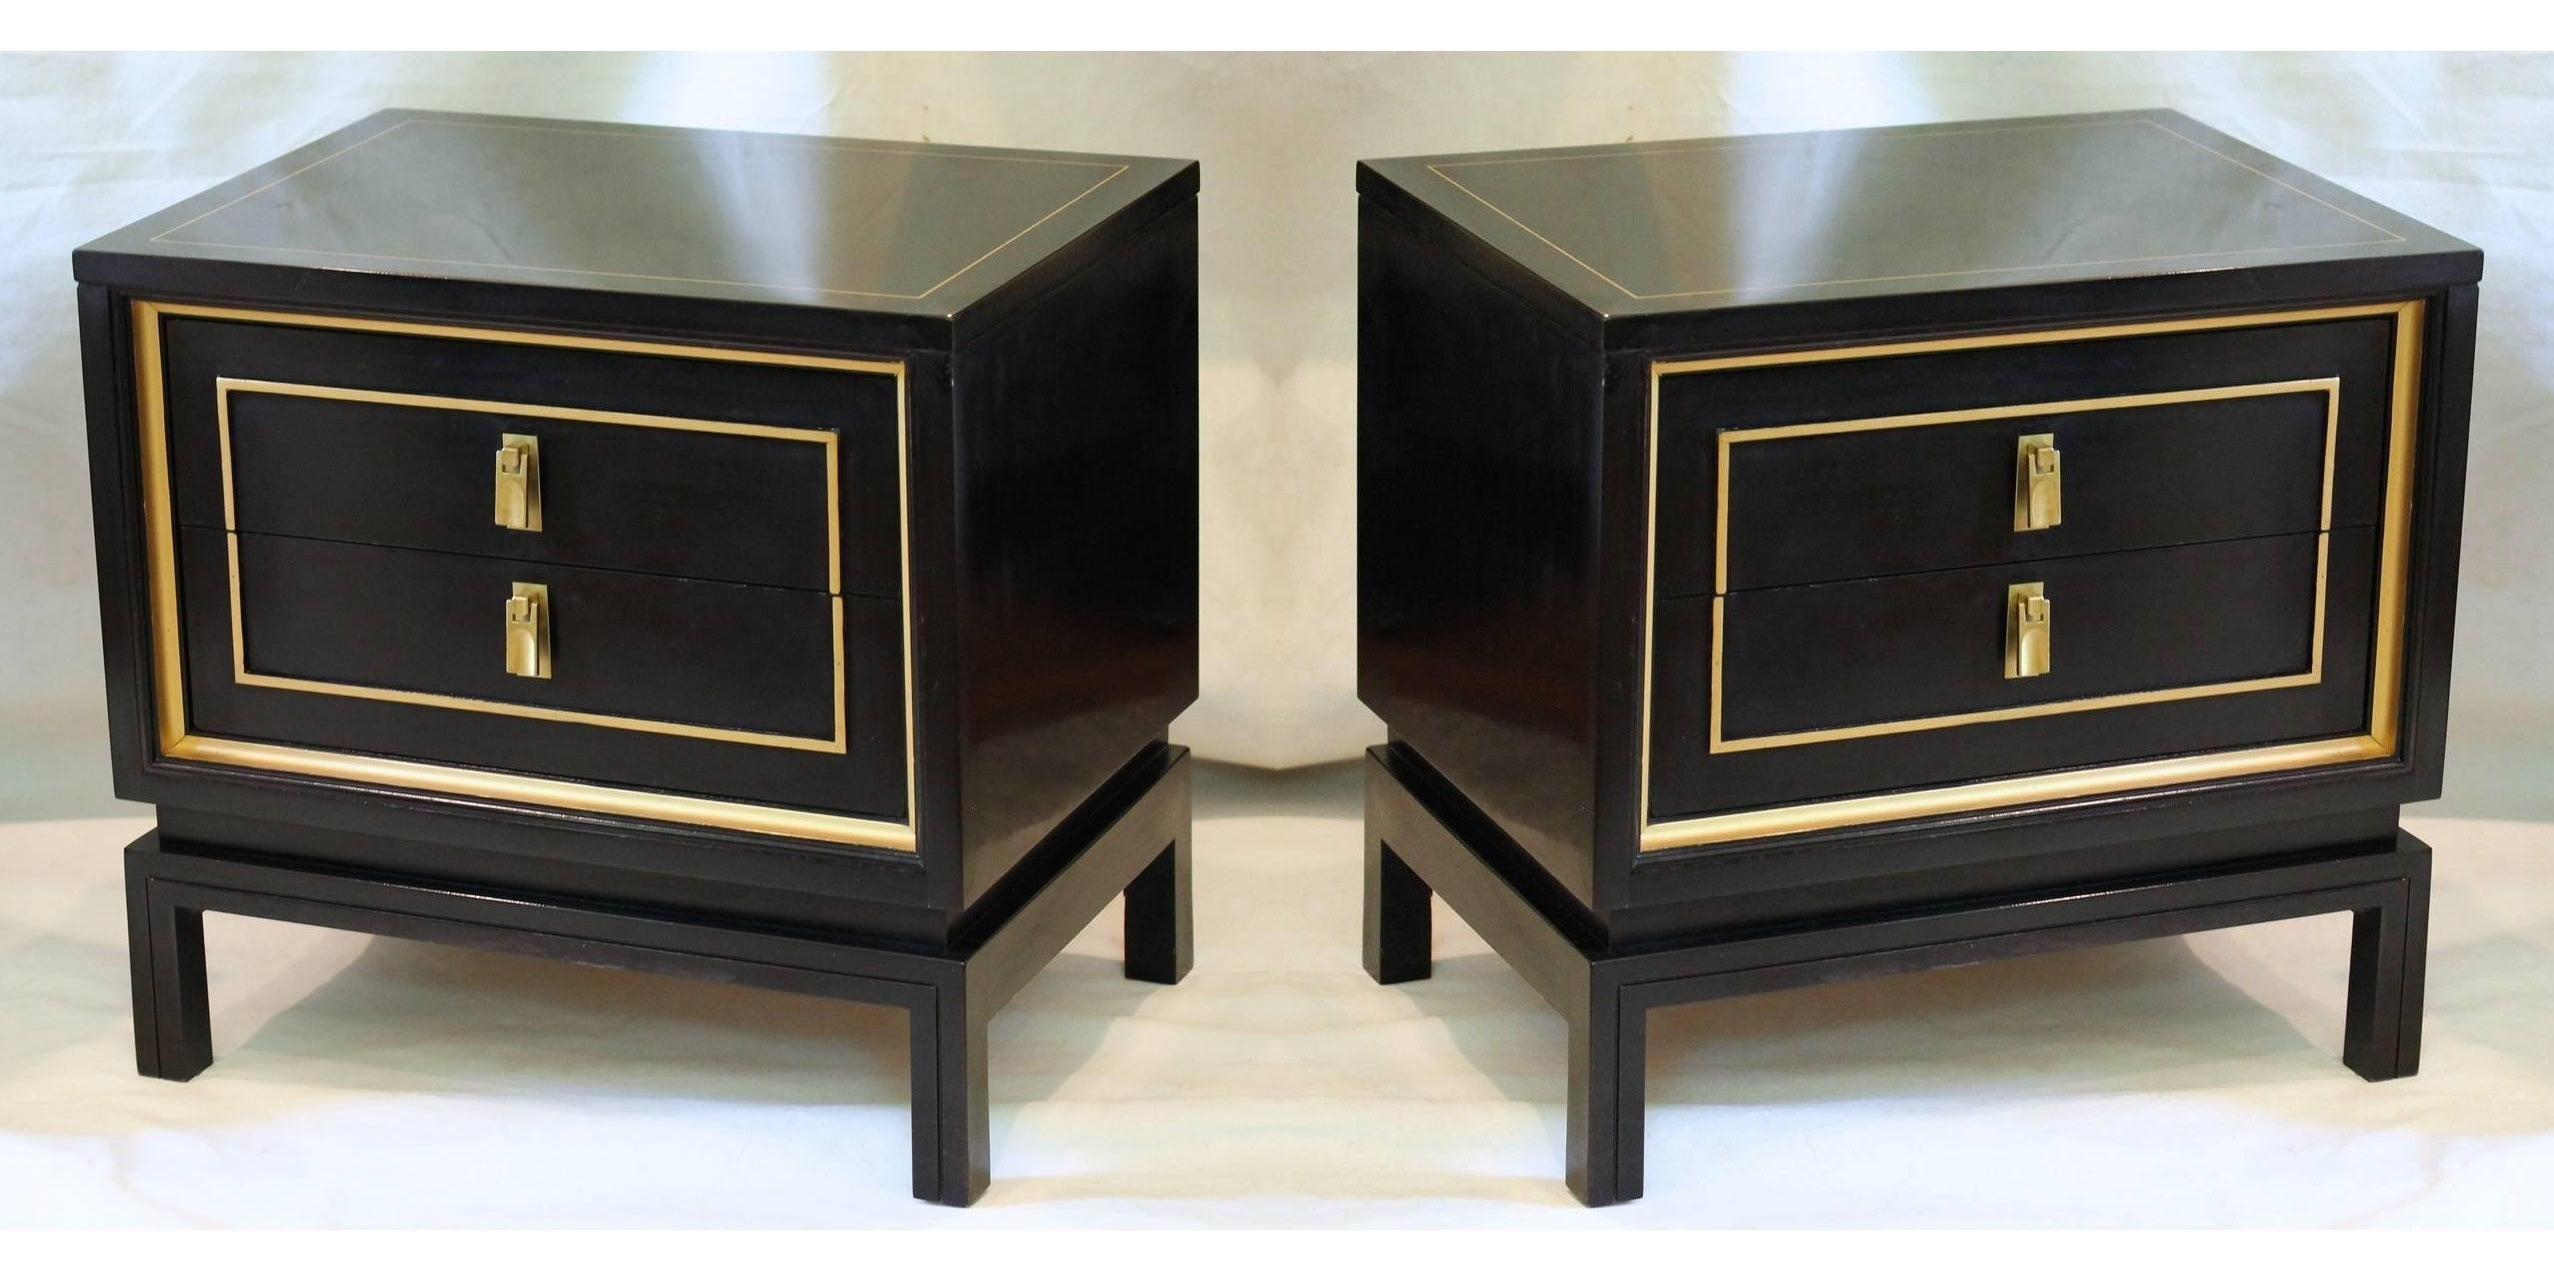 Pair Of Black Lacquered And Gold Nightstands Or End Tables